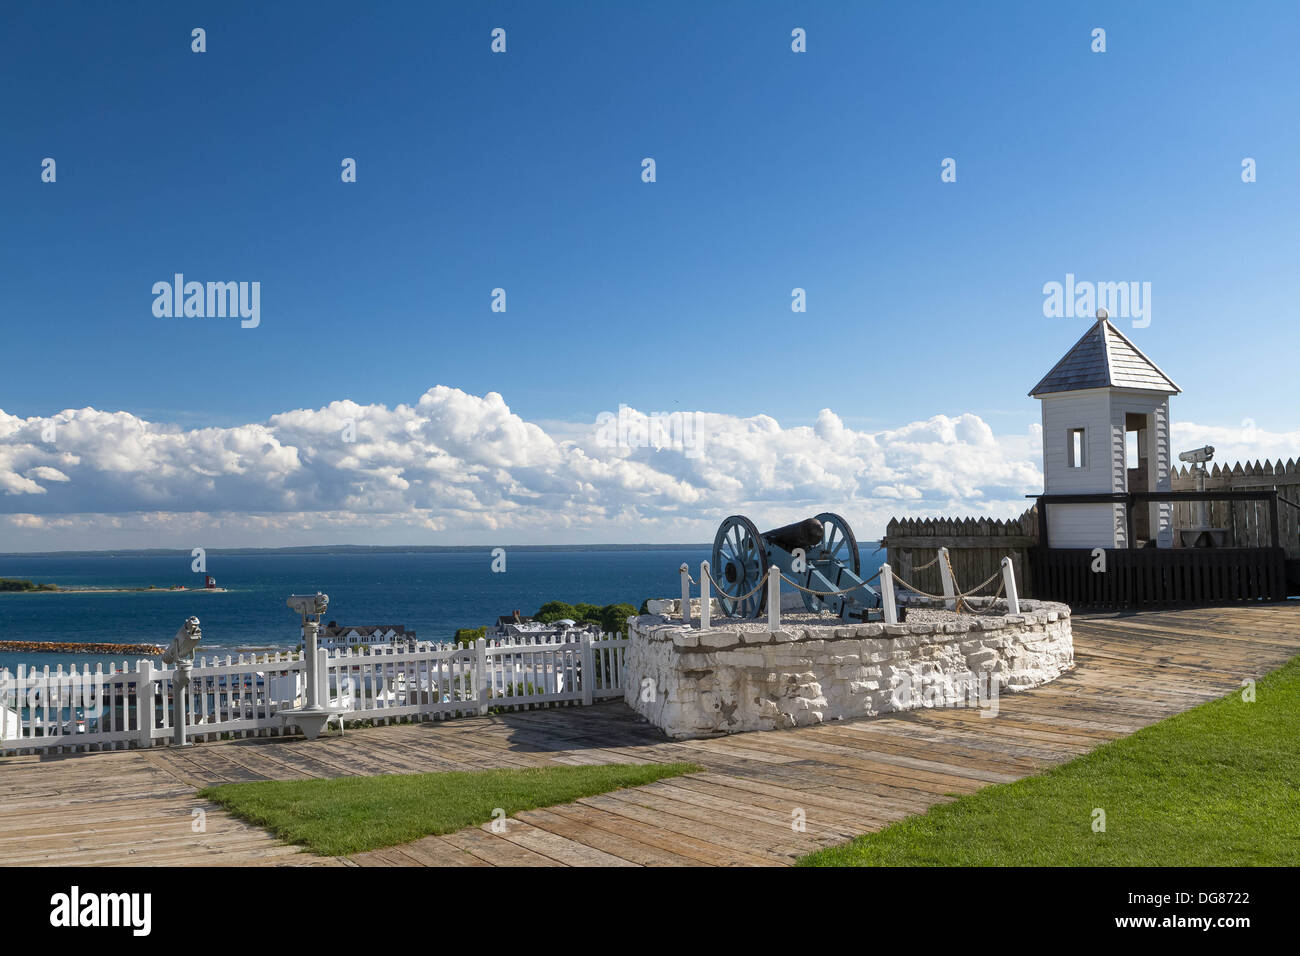 Looking from Fort Mackinac on Mackinac Island out into the Straits of Mackinac. There is canon and a look out tower. Stock Photo